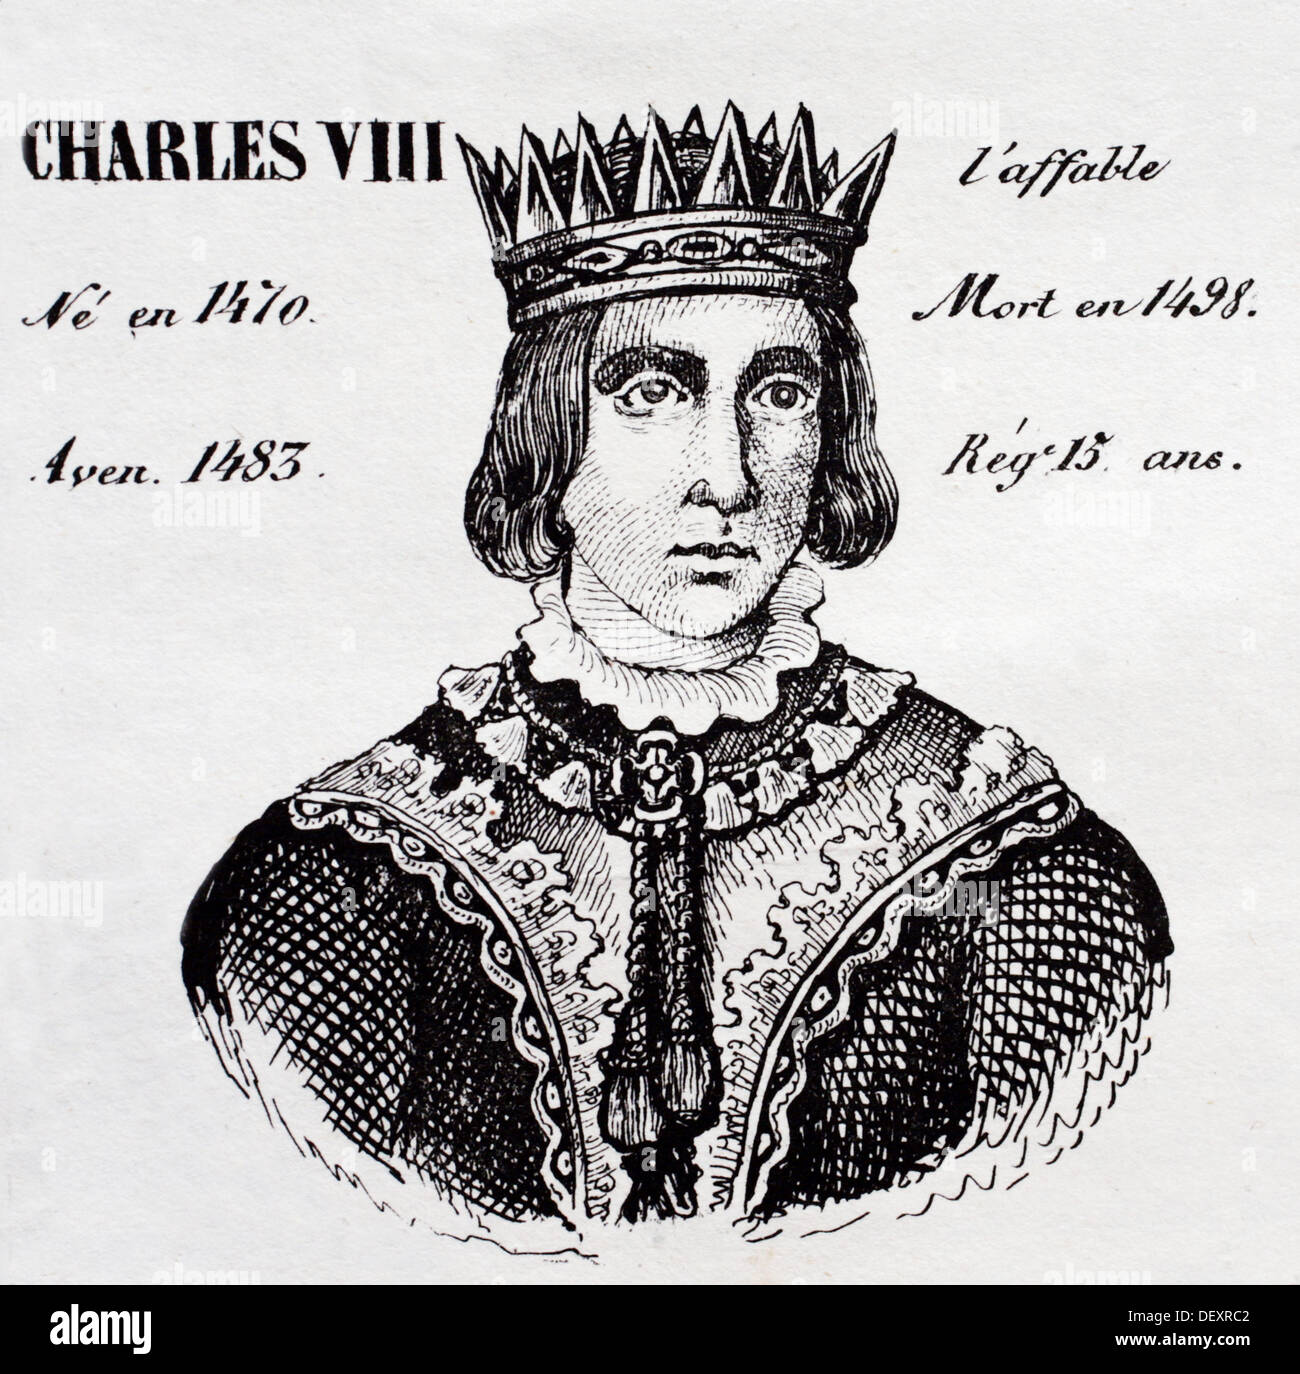 Charles VIII, the Affable, king of France from 1483 to 1498. History of France, by  J.Henry (Paris, 1842) - Stock Image